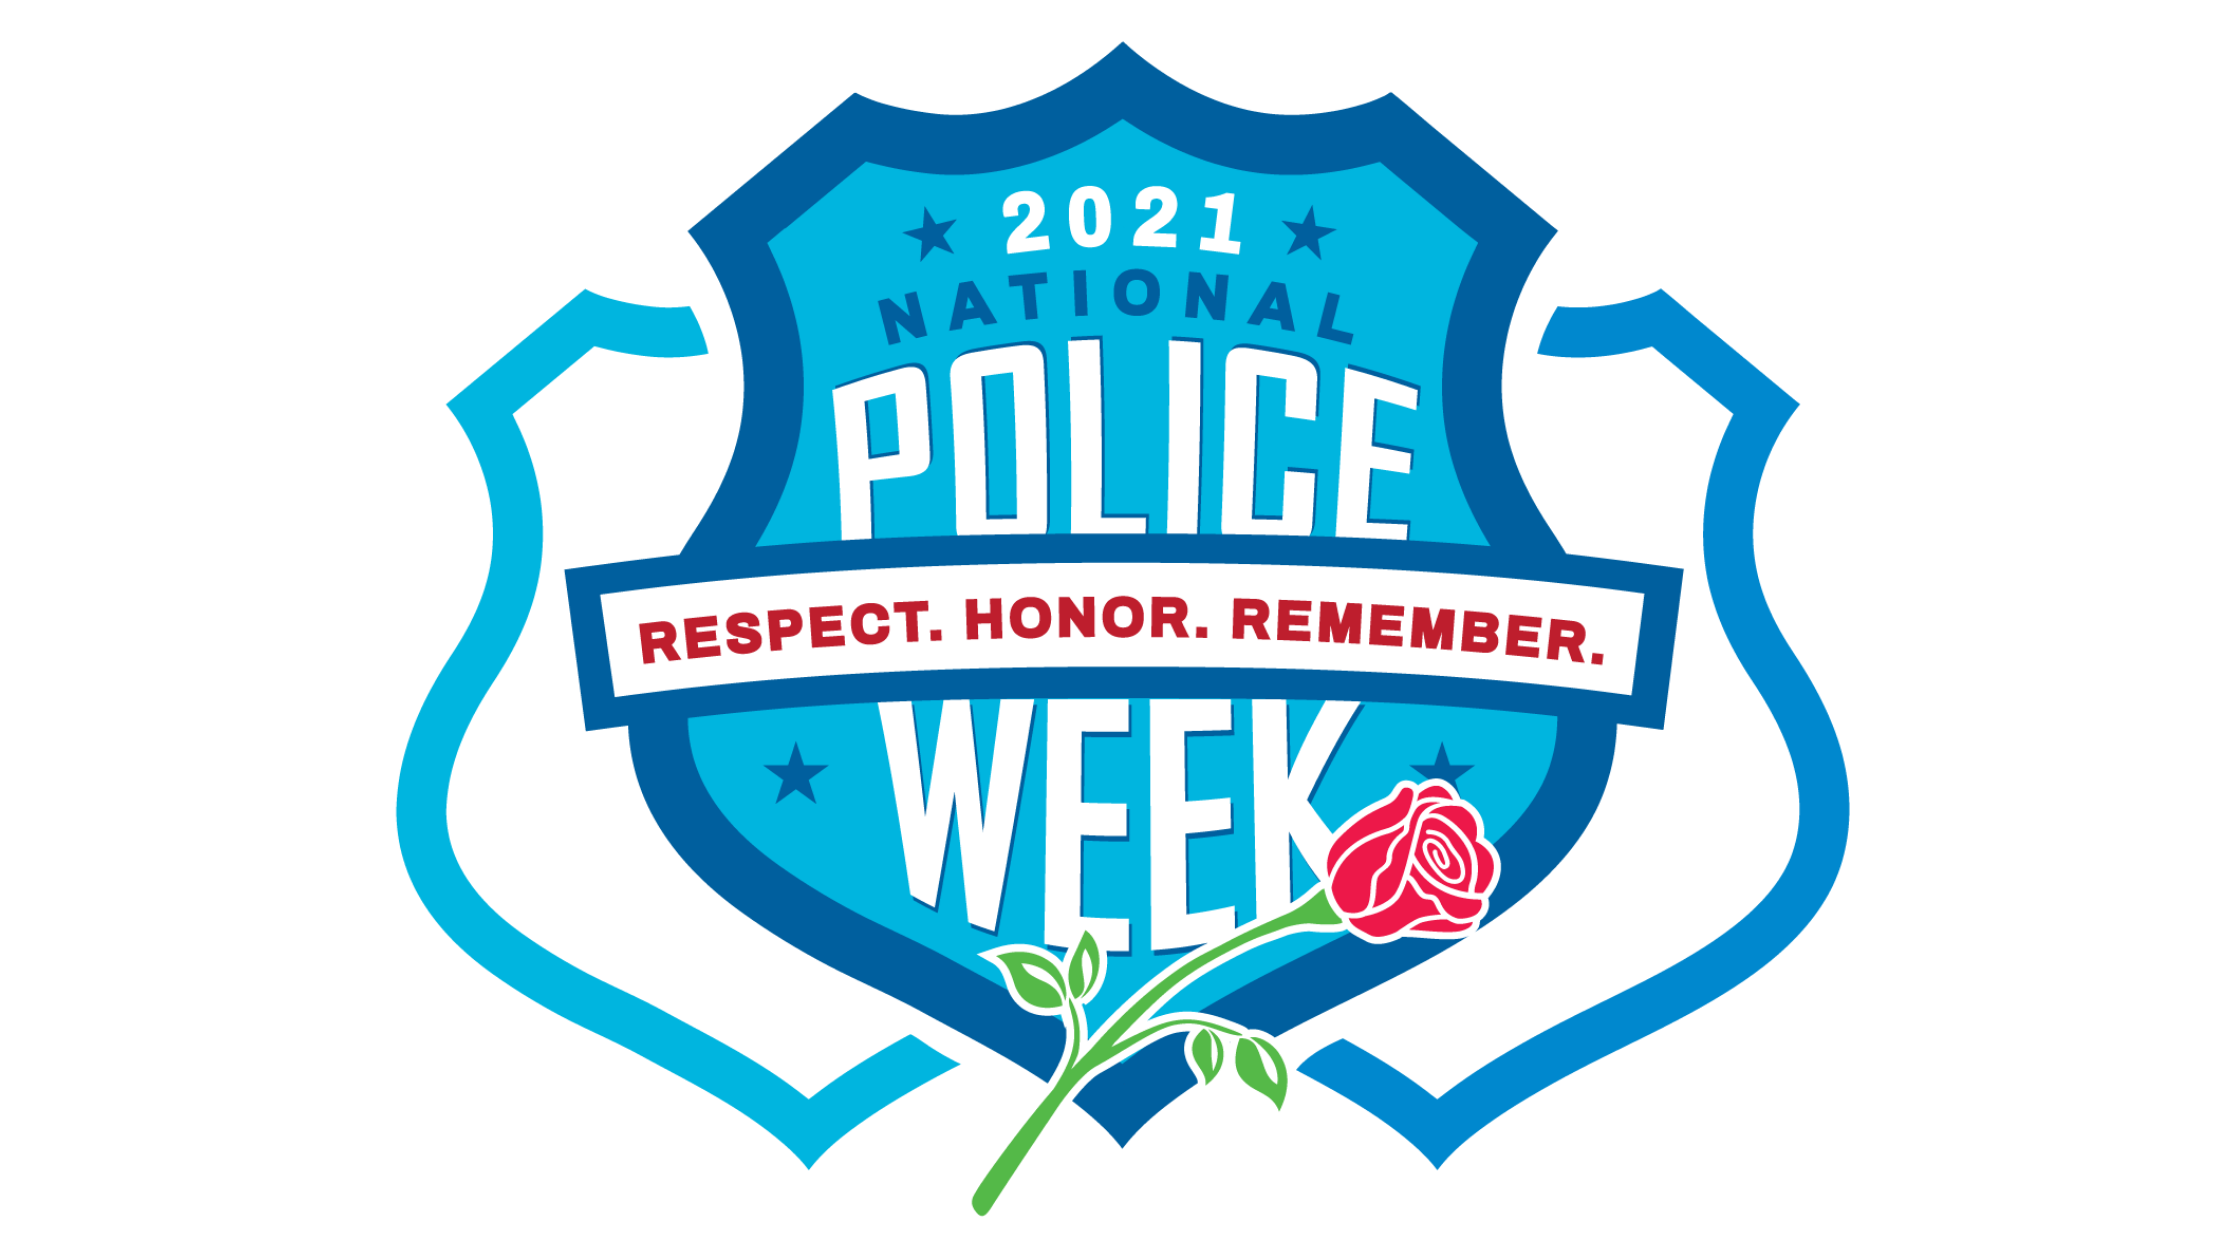 #HELPFIRST FOR FIRST RESPONDERS - NATIONAL POLICE WEEK